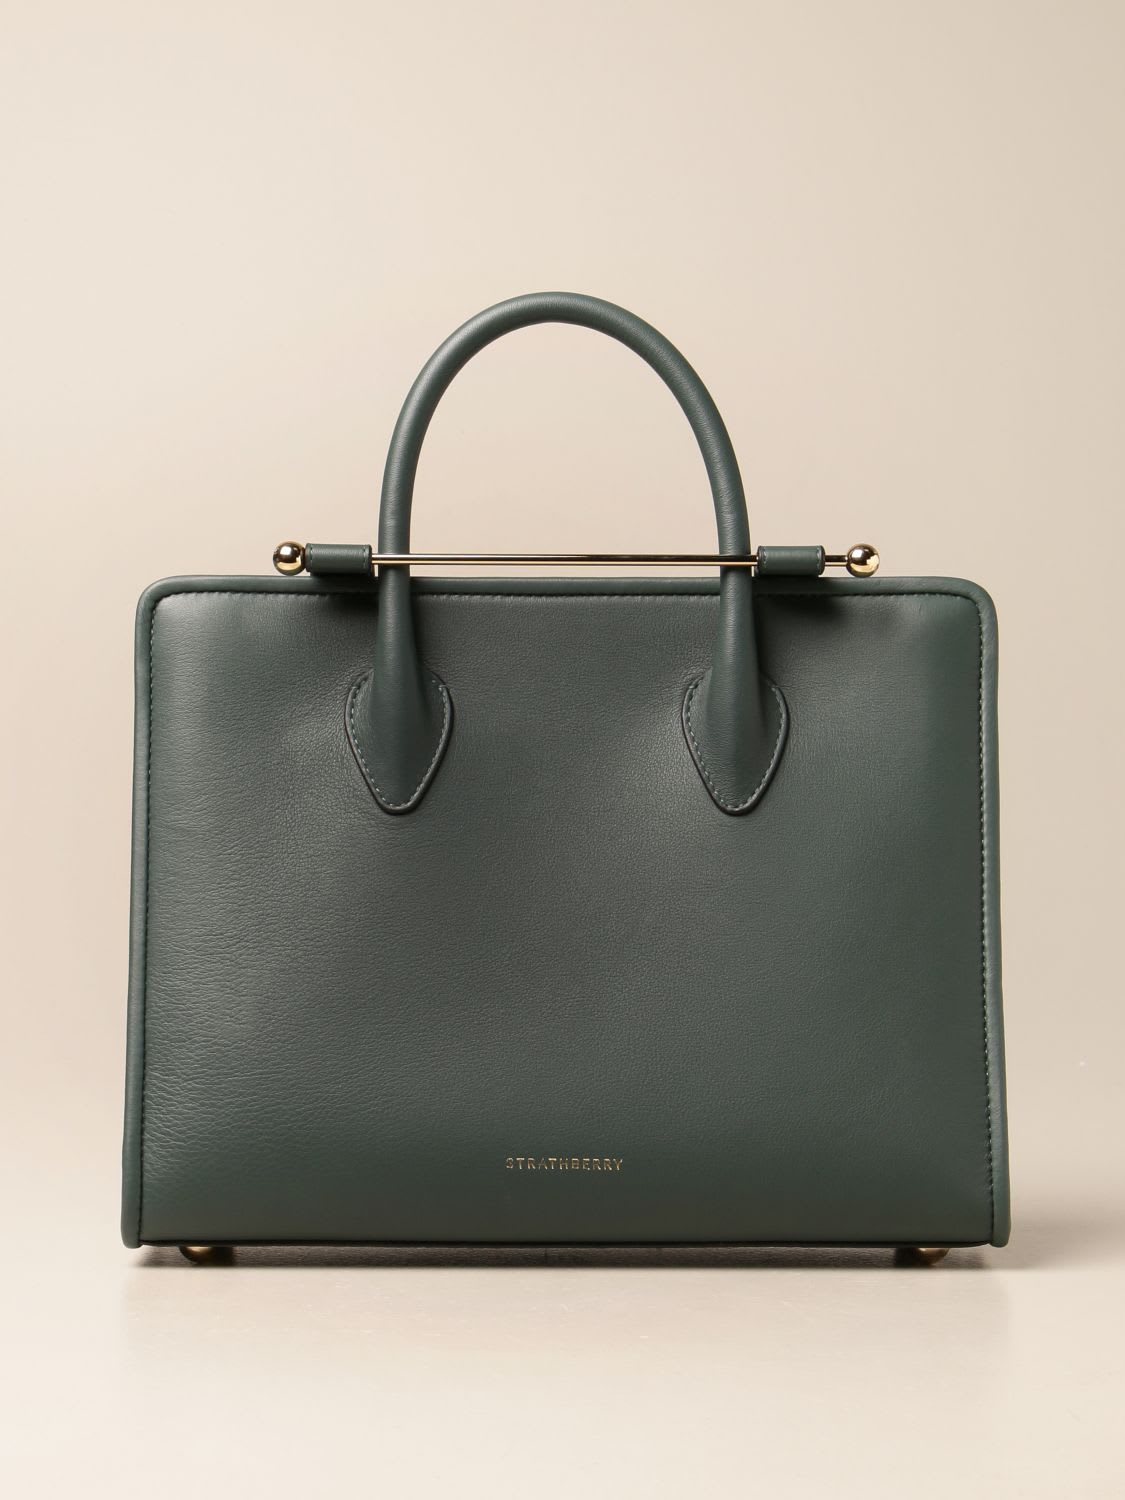 Strathberry Shoulder Bag Strathberry Midi Tote Bag In Leather